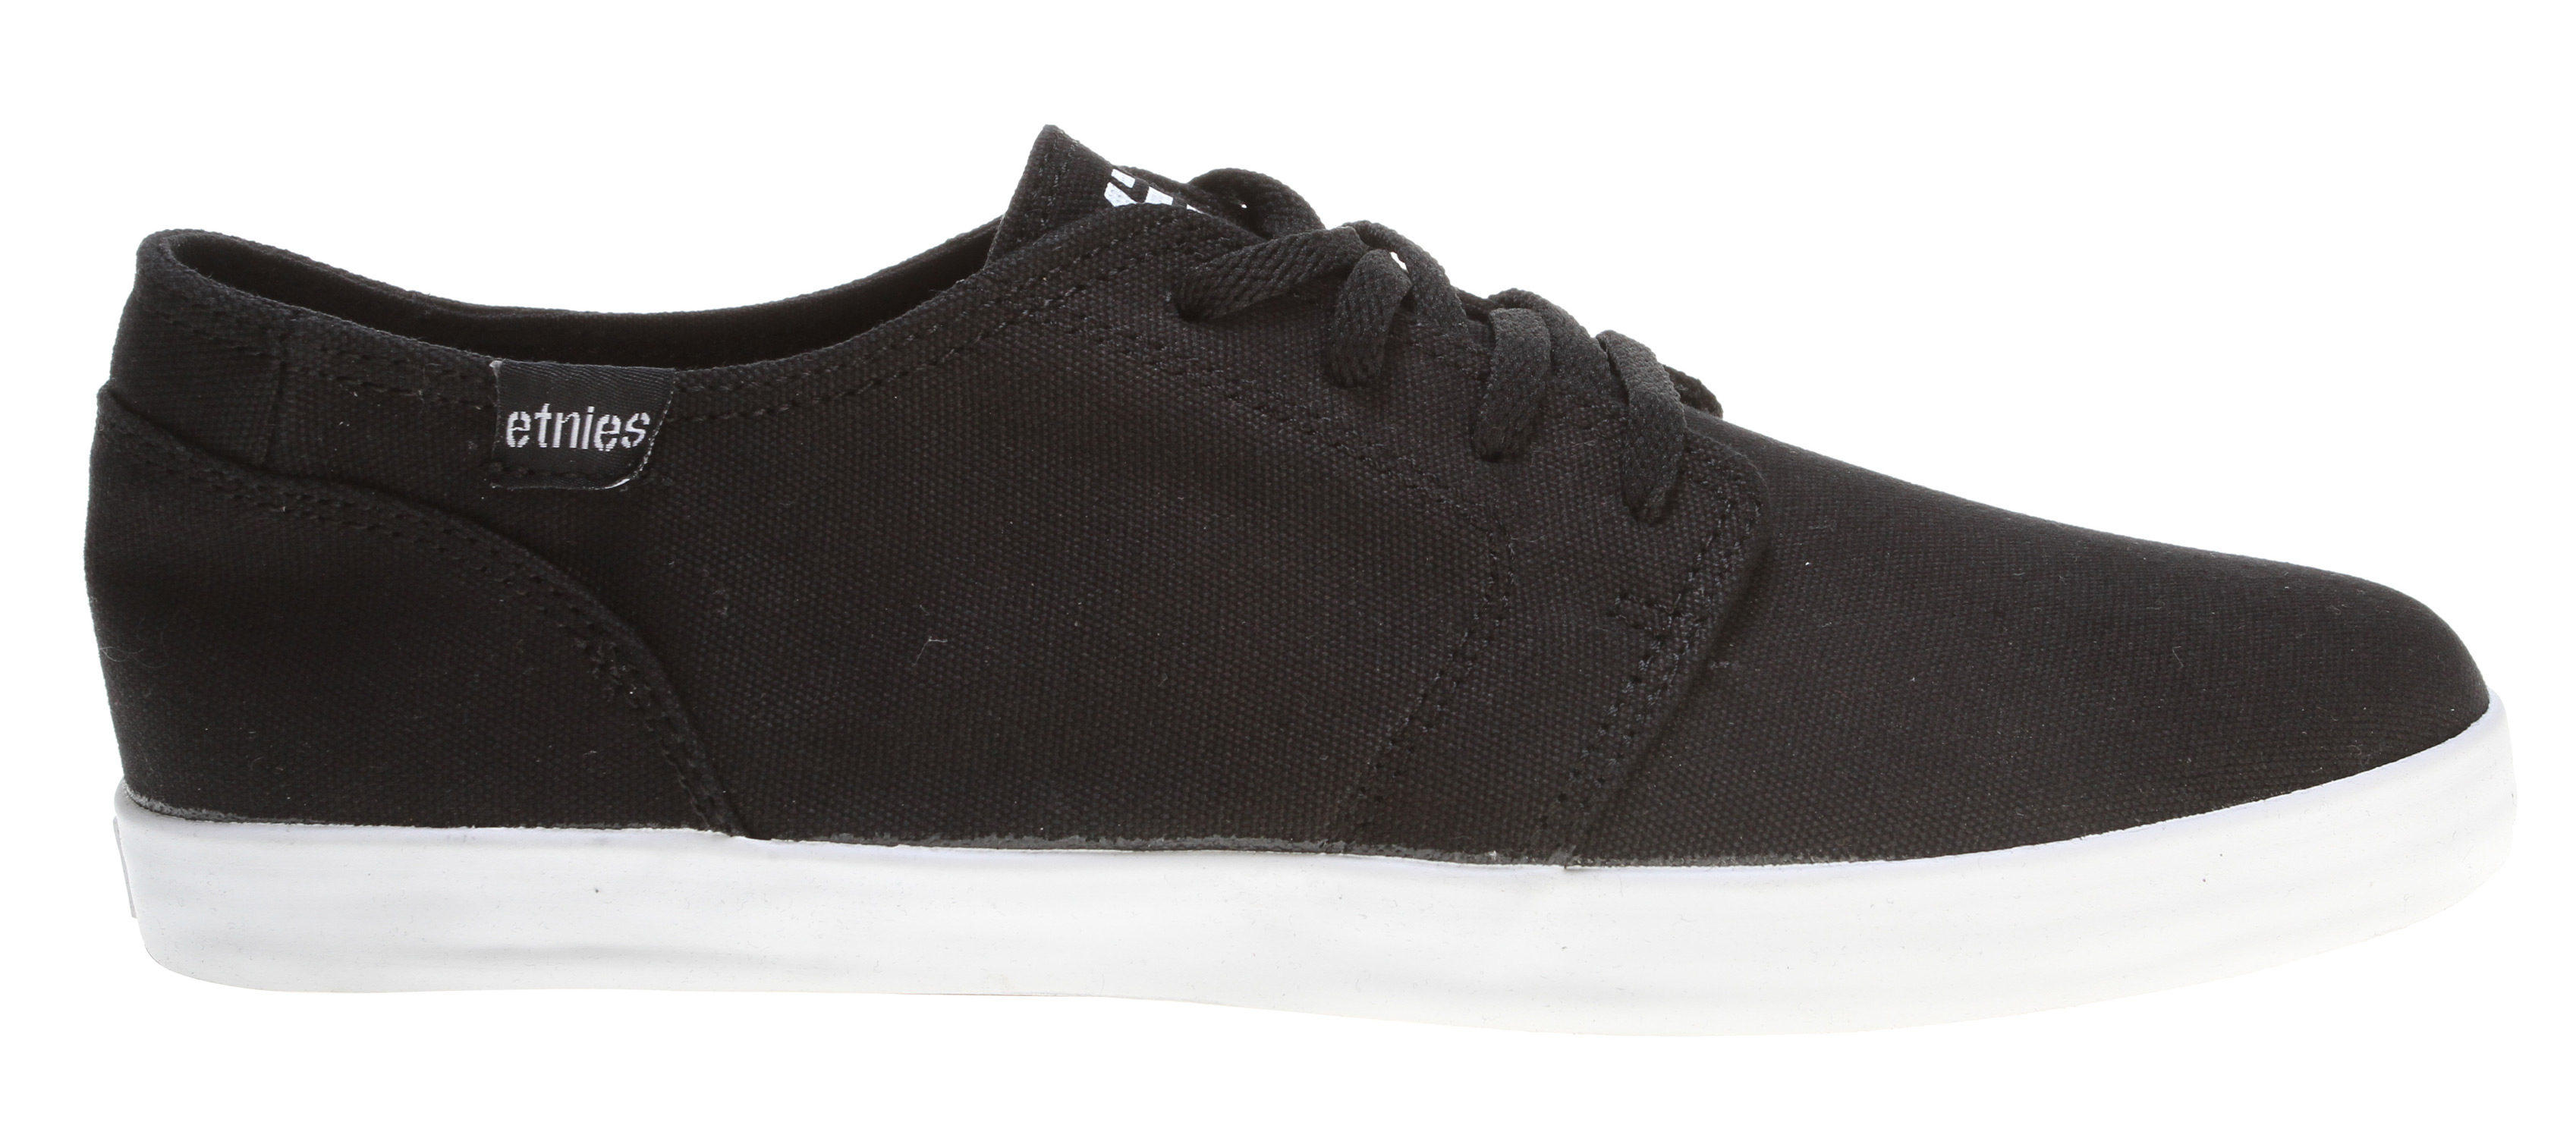 Skateboard Key Features of the Etnies Lurker Vulc H Skate Shoes: Classic style low top Natural or recycled upper materials Soft diecut EVA footbed Rubber outsole - $30.95